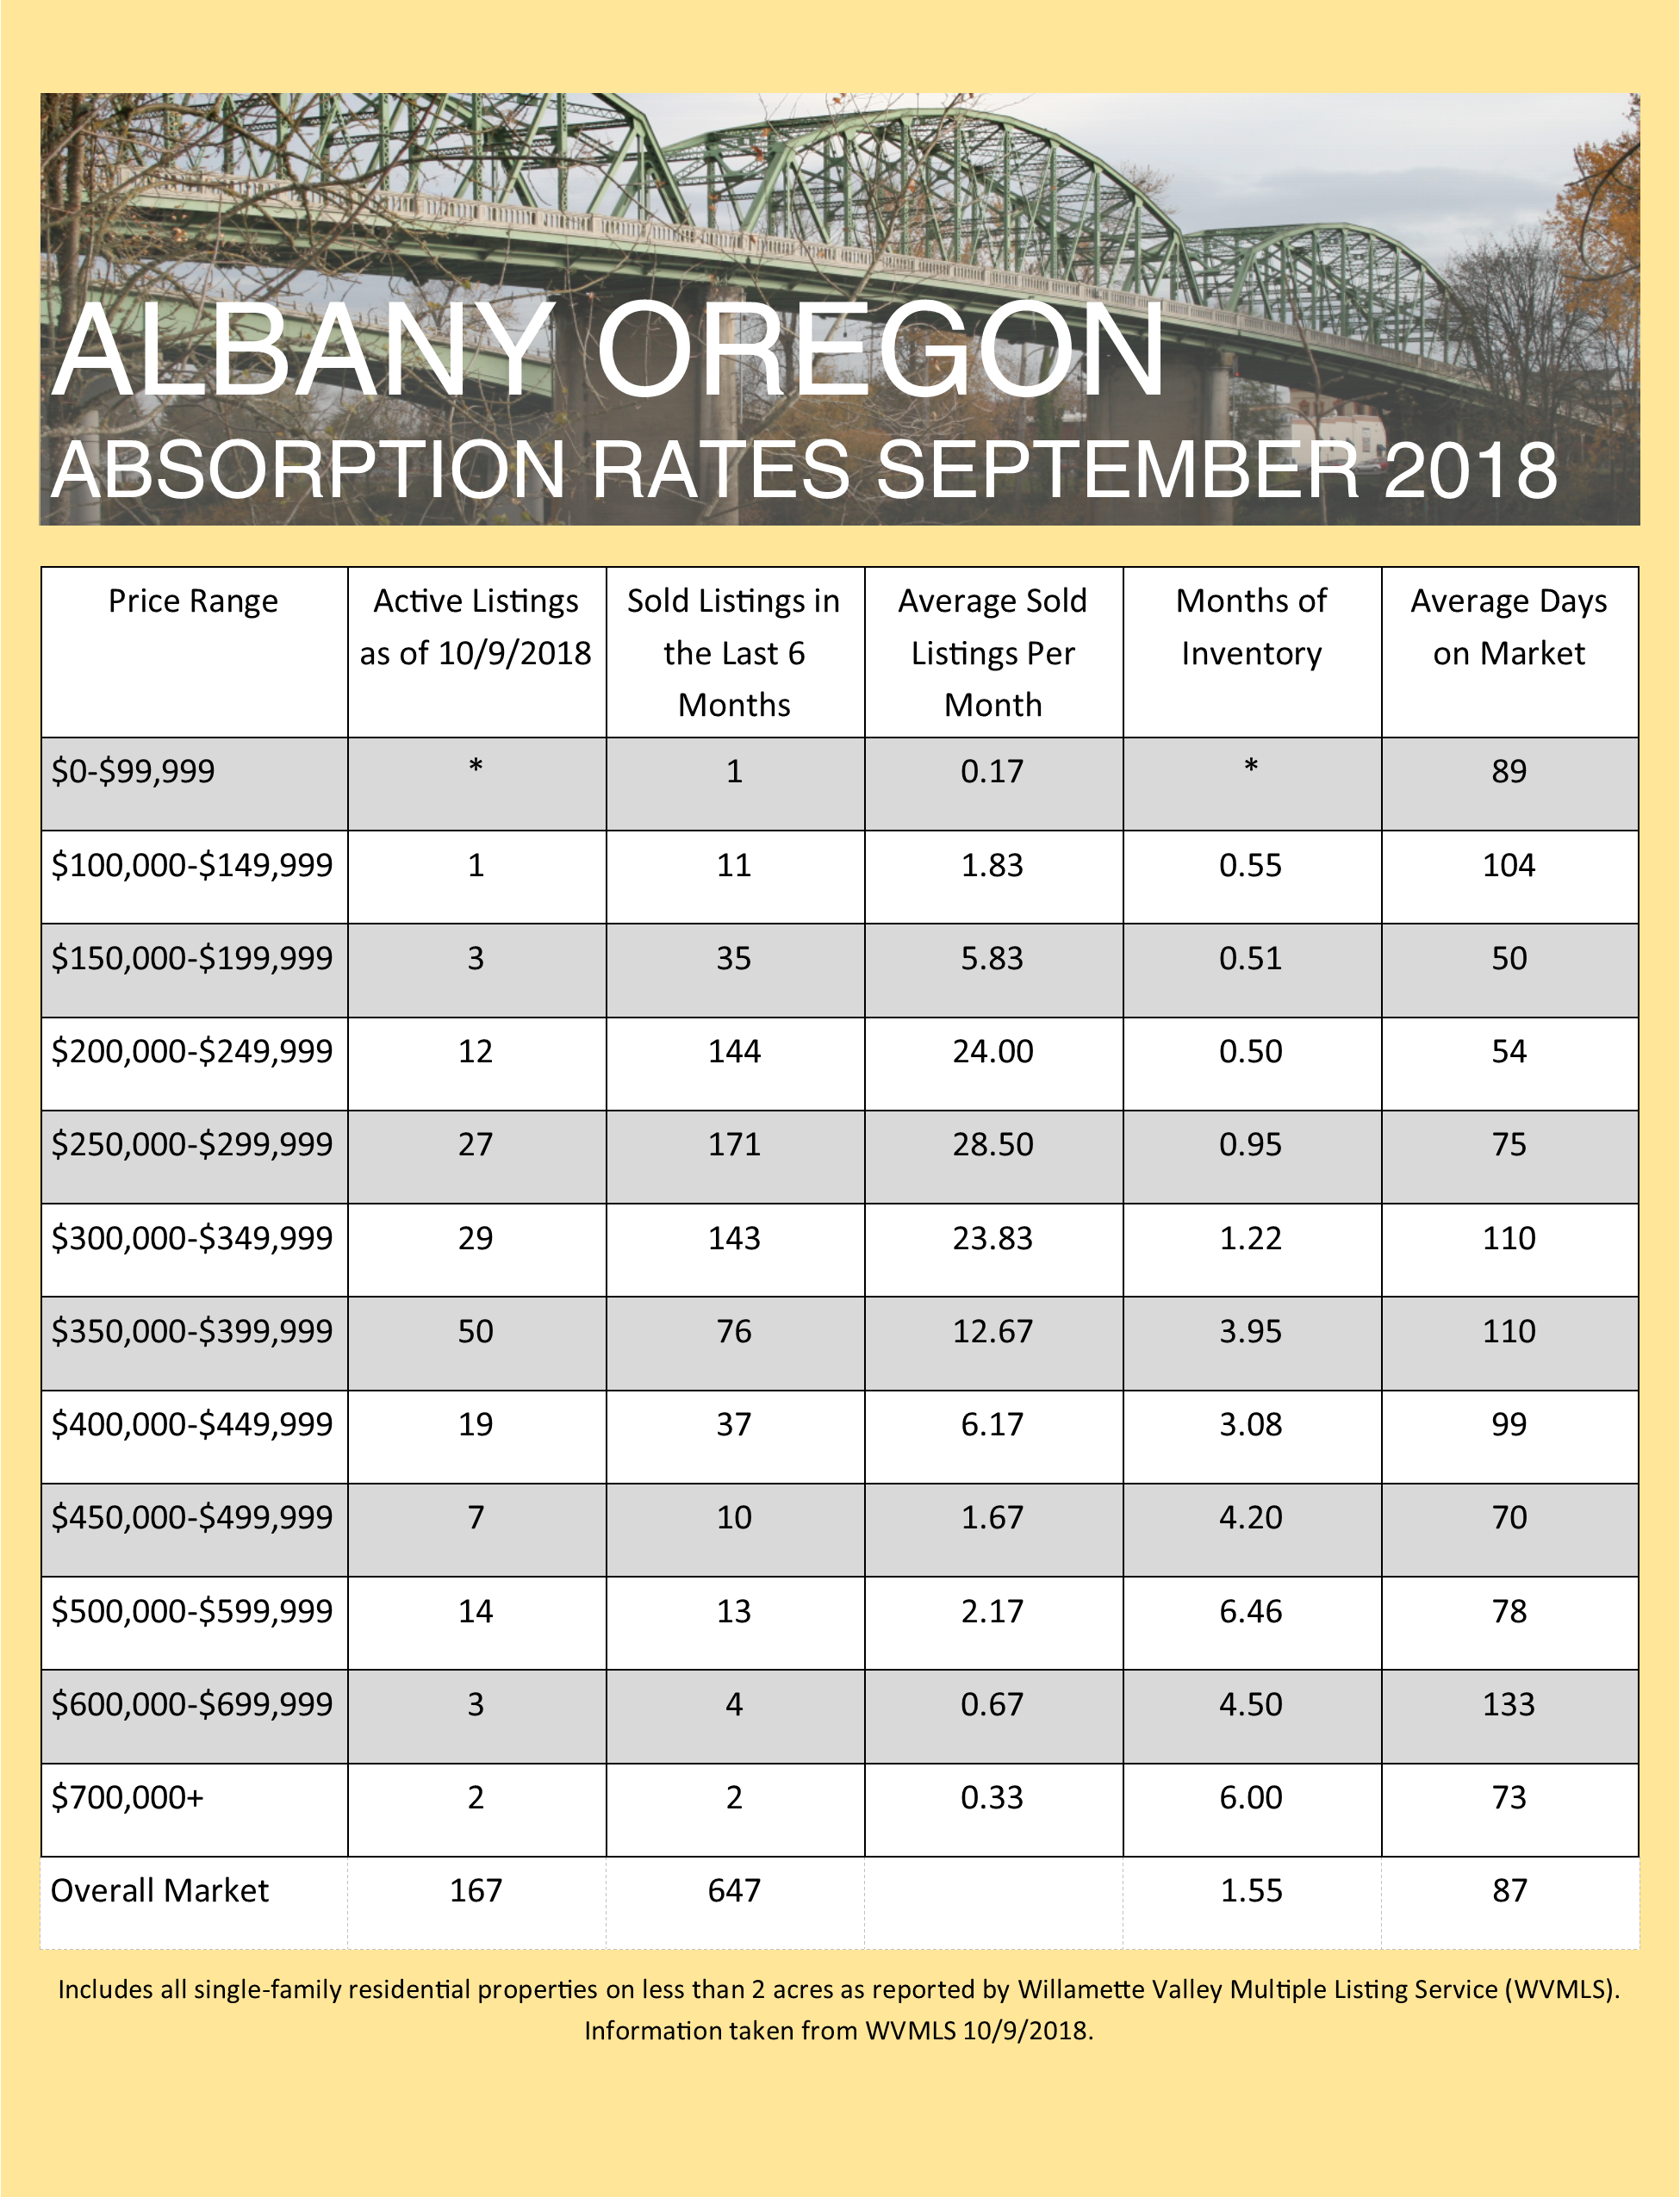 September 2018 Absorption Rates for Albany and Corvallis